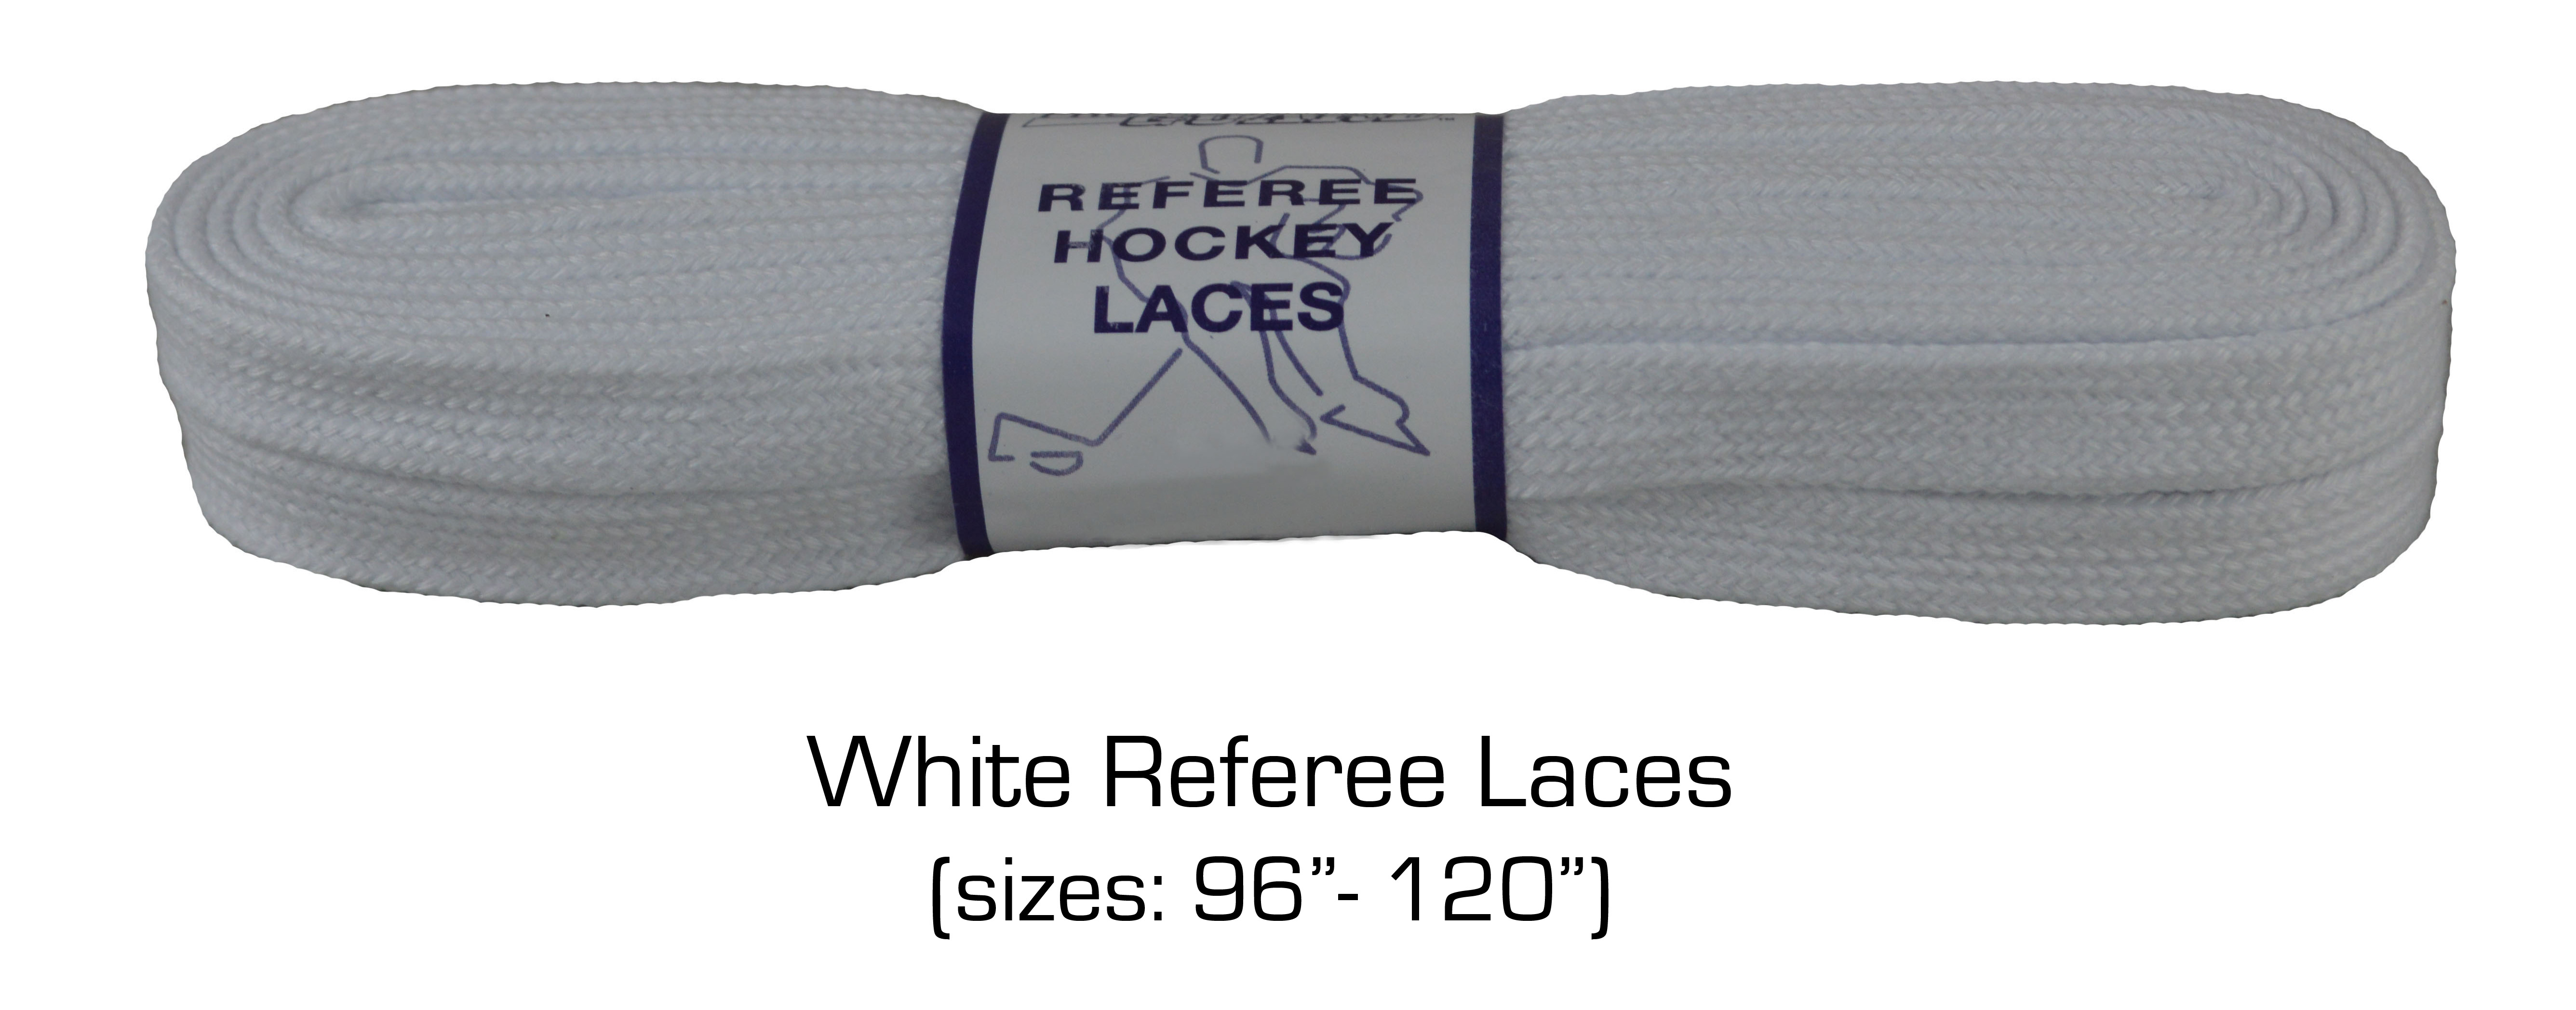 396_96%22Referee Laces.jpg